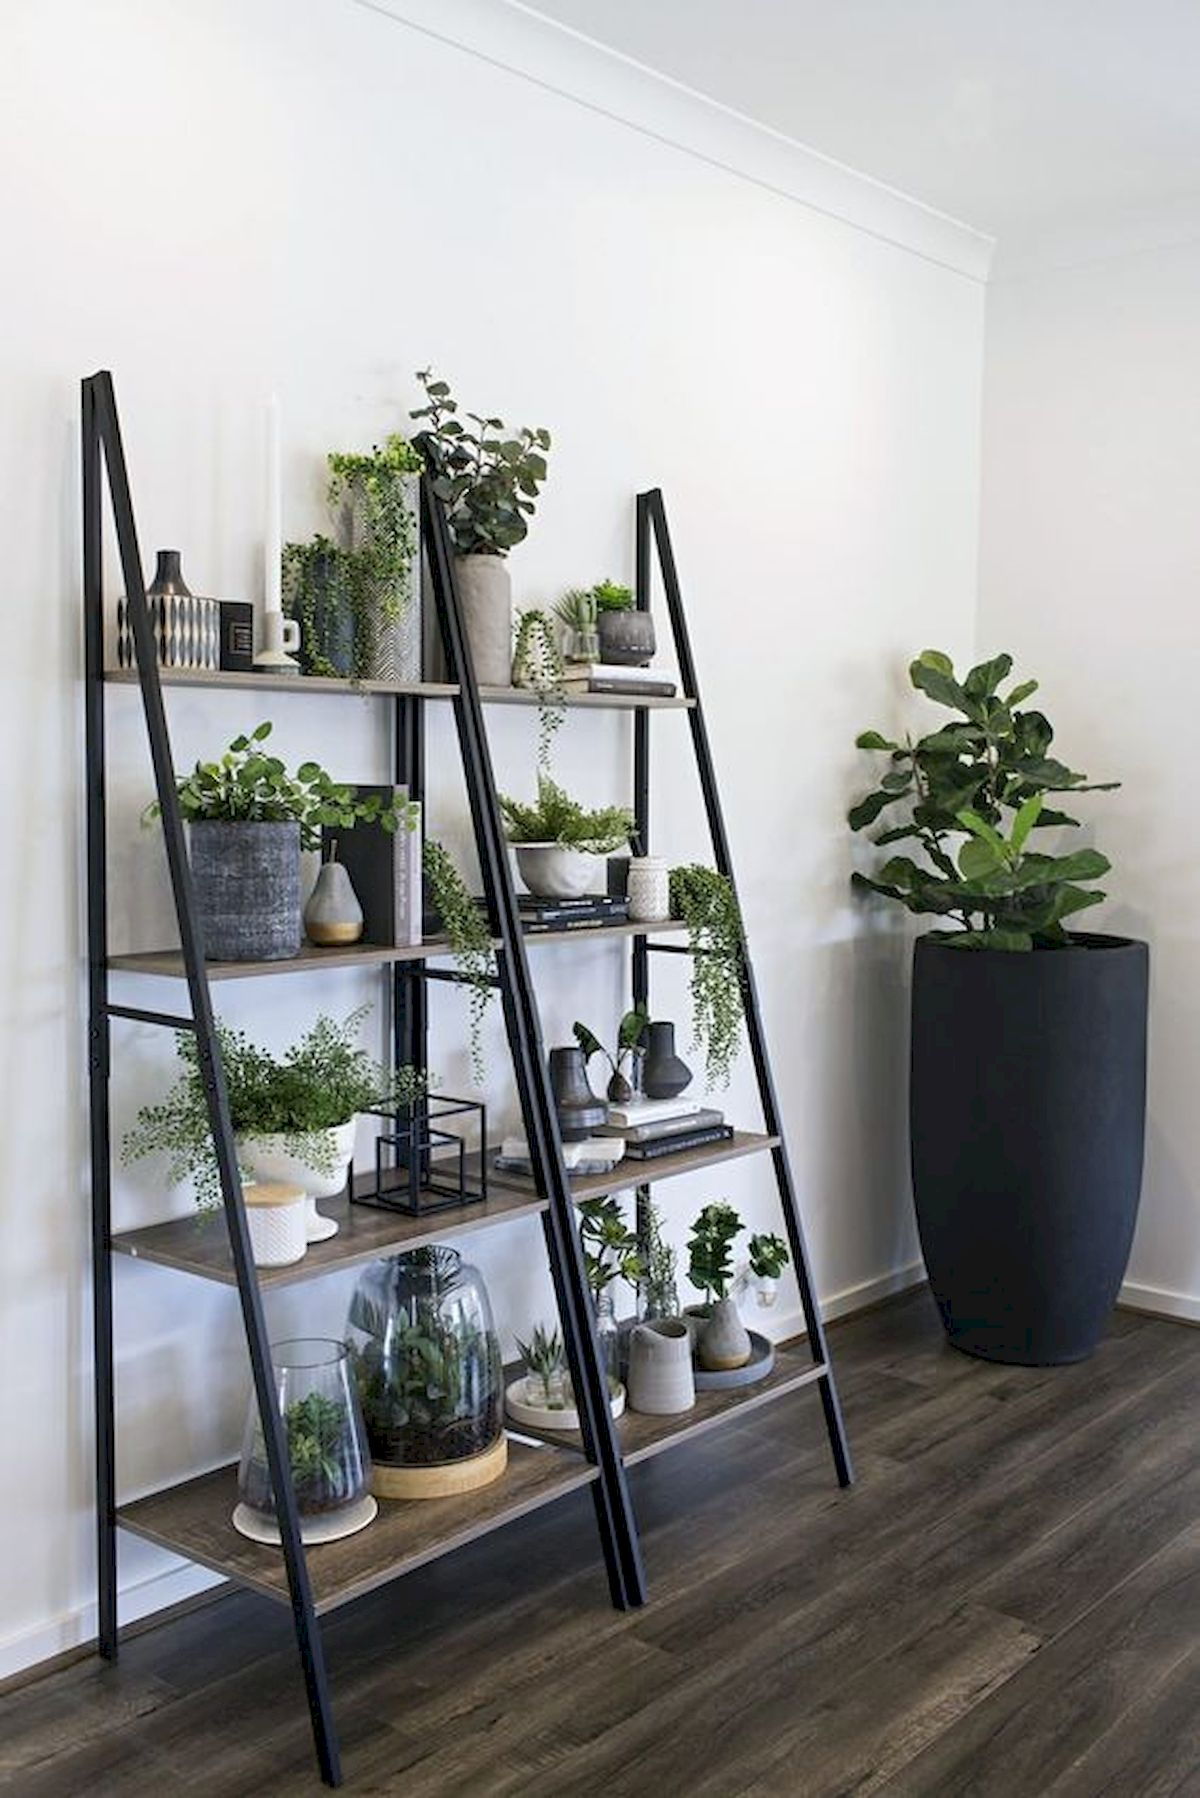 44 Fantastic Vertical Garden Ideas To Make Your Home Beautiful (27)